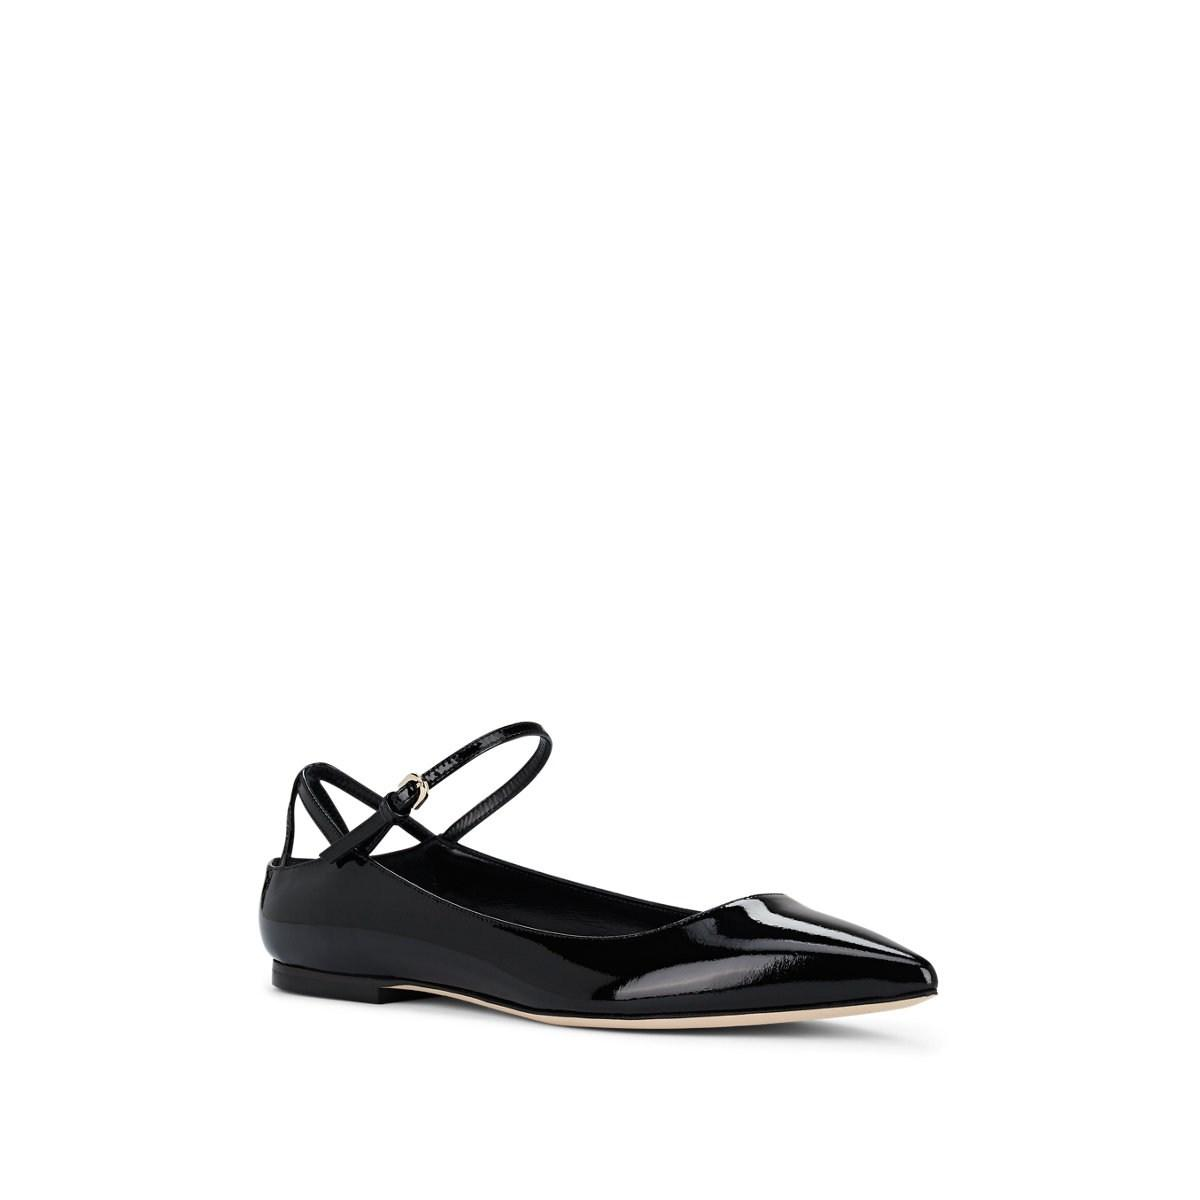 819a8039032 Brian Atwood Astrid Point Toe Patent Leather Flats in Black - Lyst